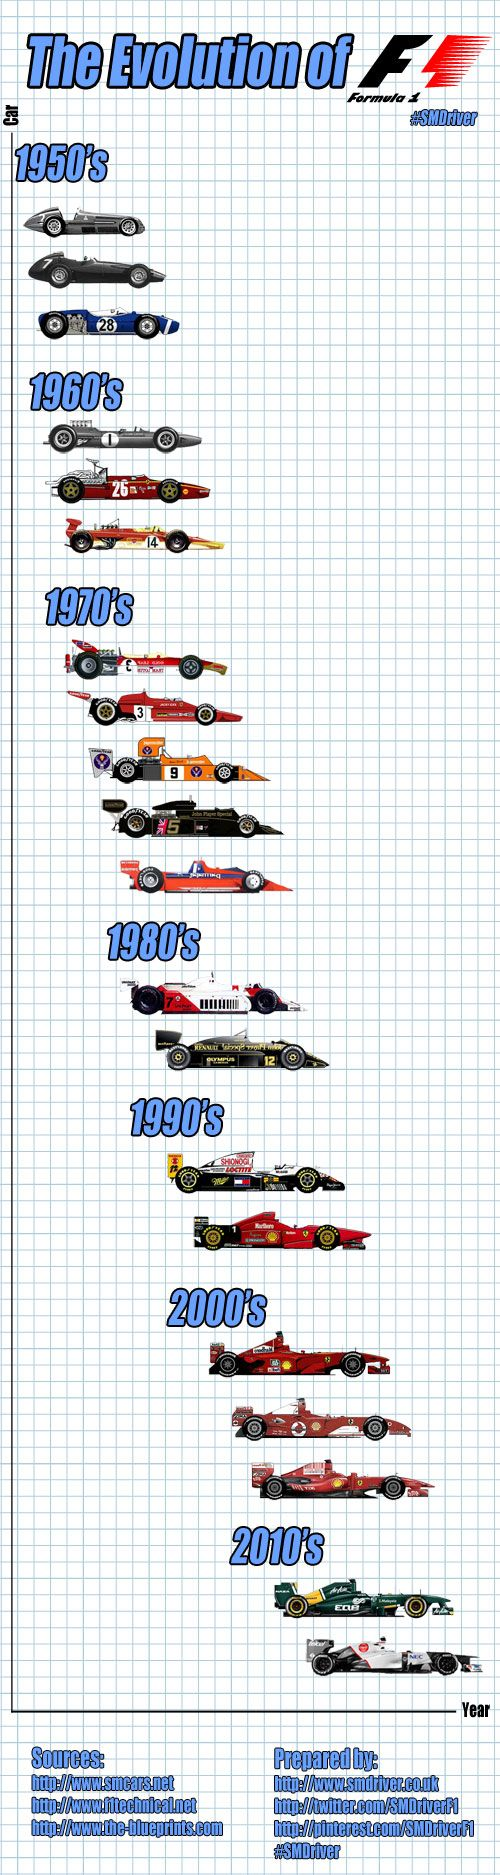 The Evolution of Formula One Cars - 1950 to 2012 #F1 #SMDriver